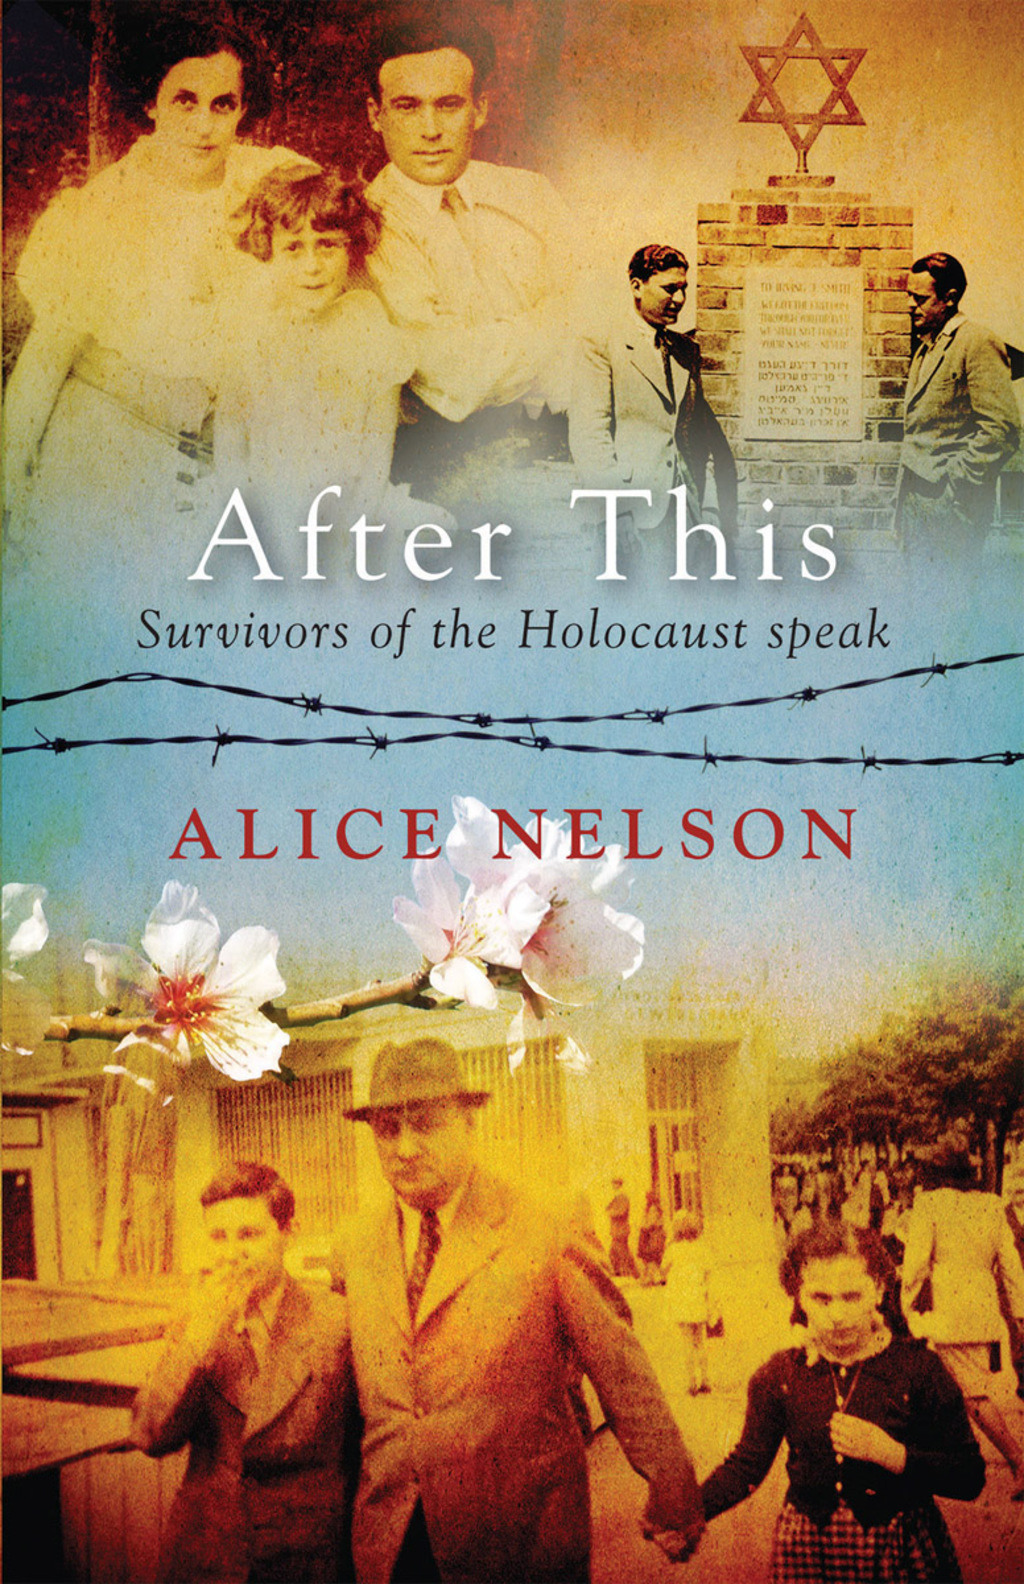 By Alice Nelson PRINTISBN: 9781925162370 E-TEXT ISBN: 9781925162370 Edition: 1